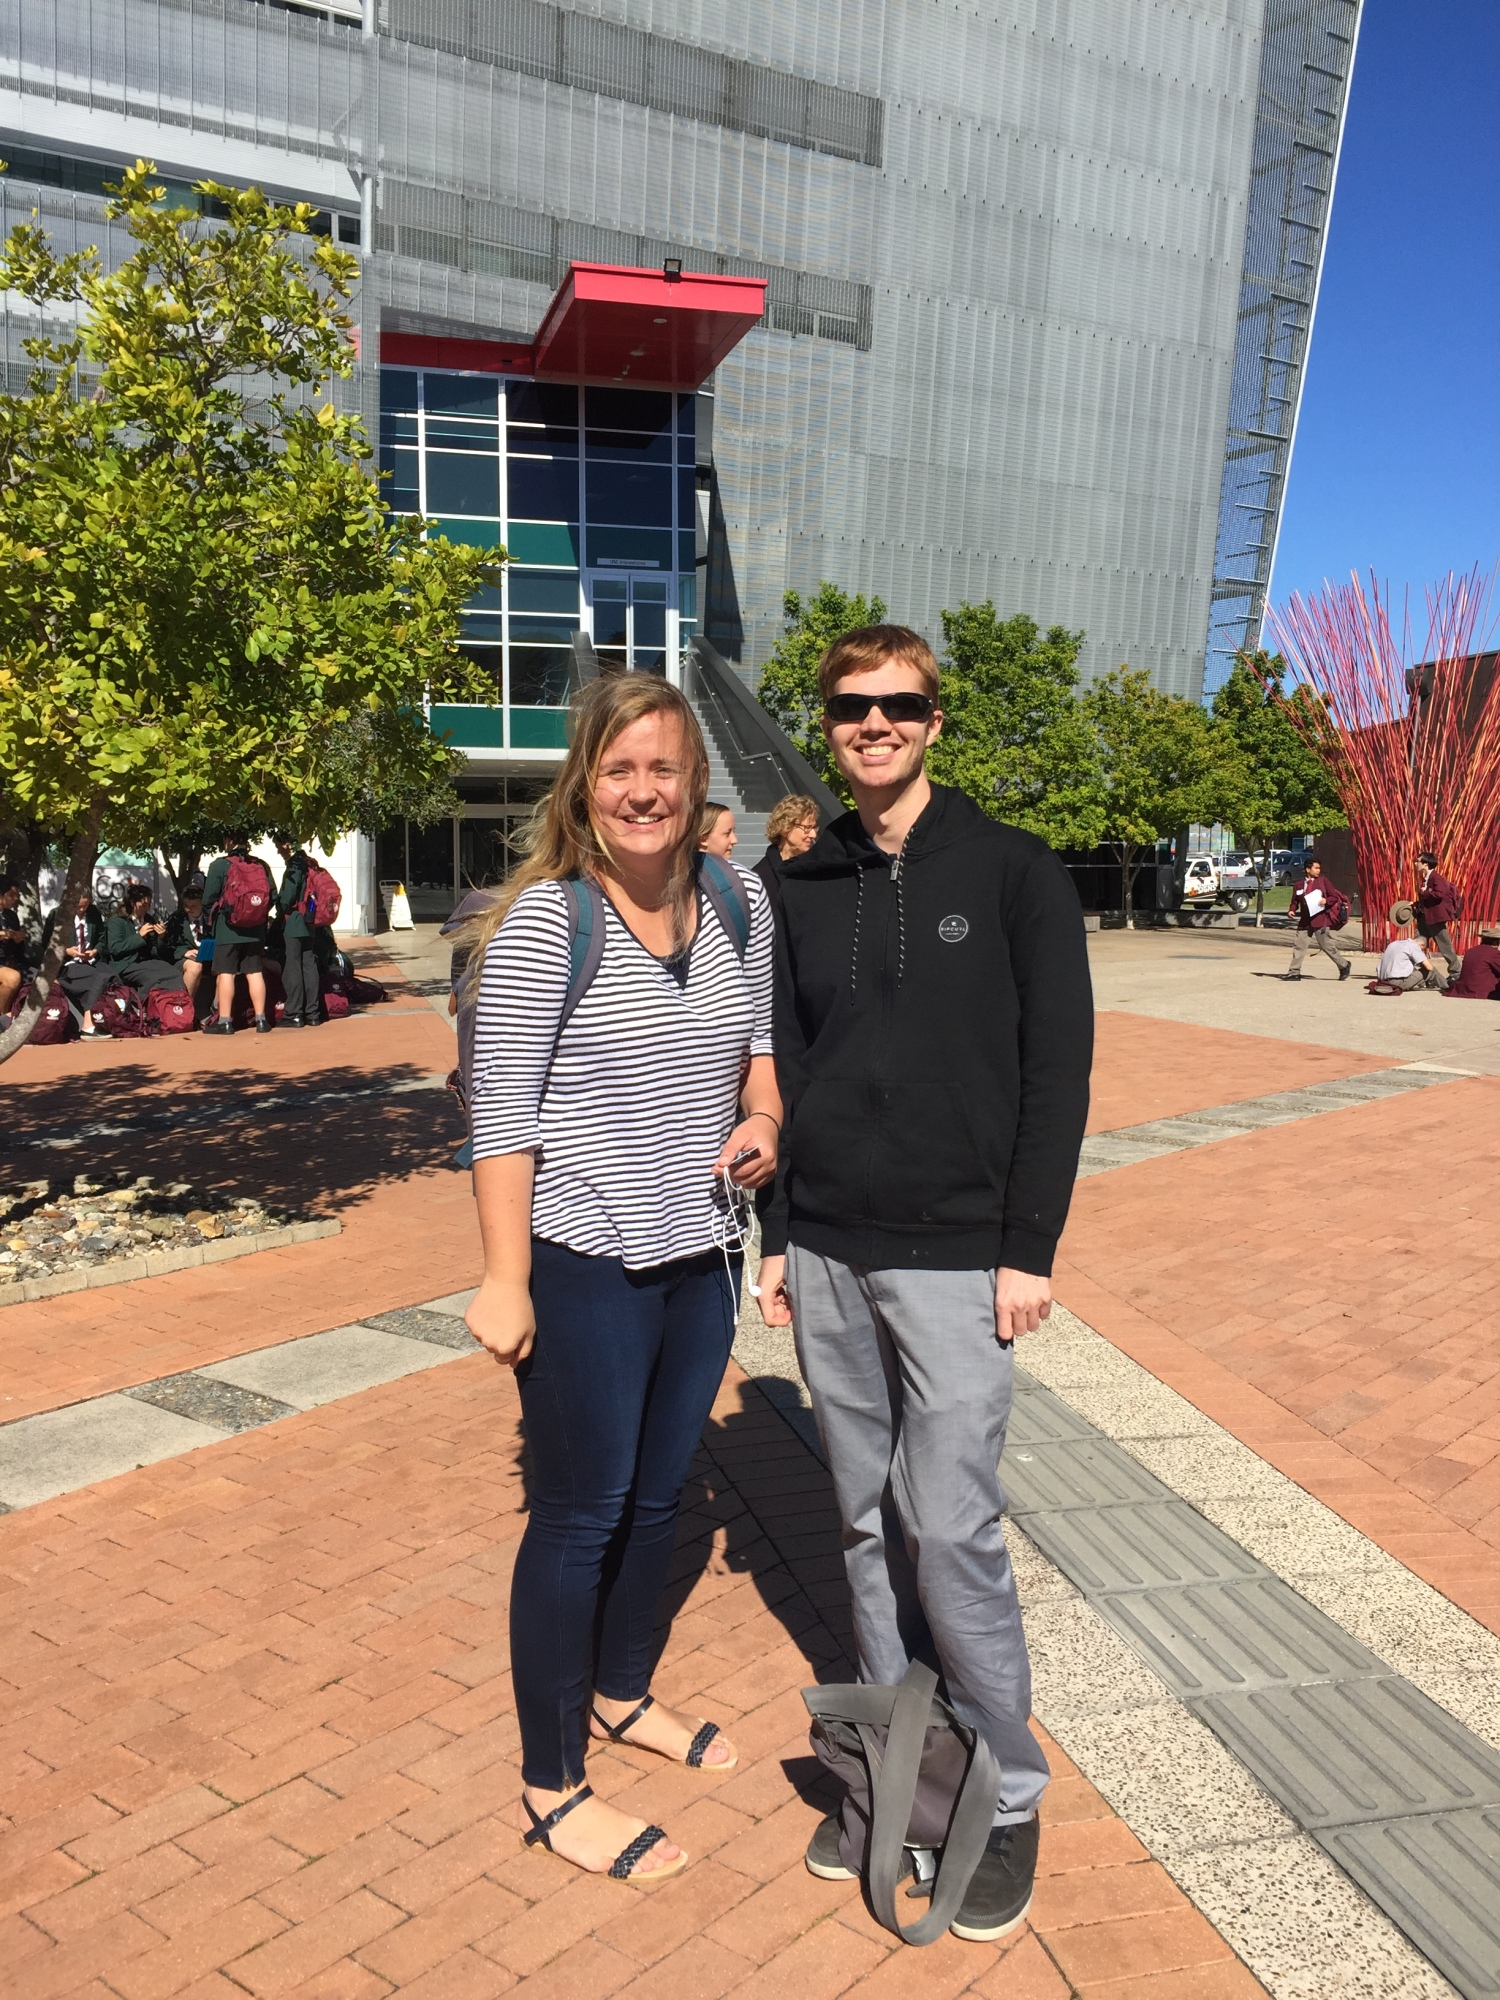 Lars and Labolina from Sweden – 1080 days of friendship, adventures, and achievements studying atUSC!